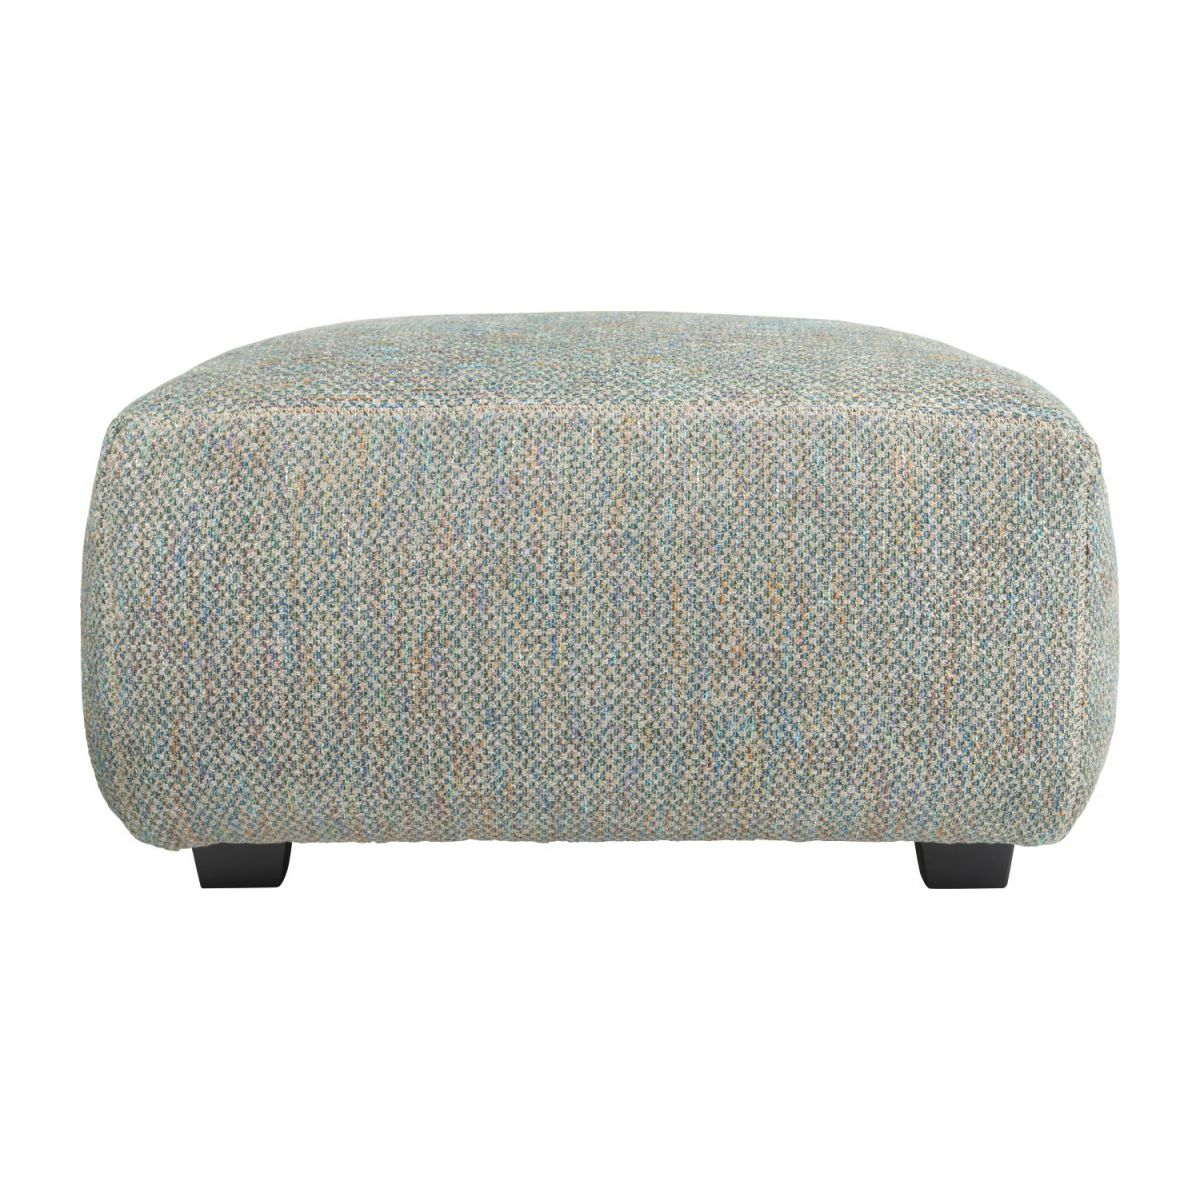 Footstool in Bellagio fabric, organic green n°4